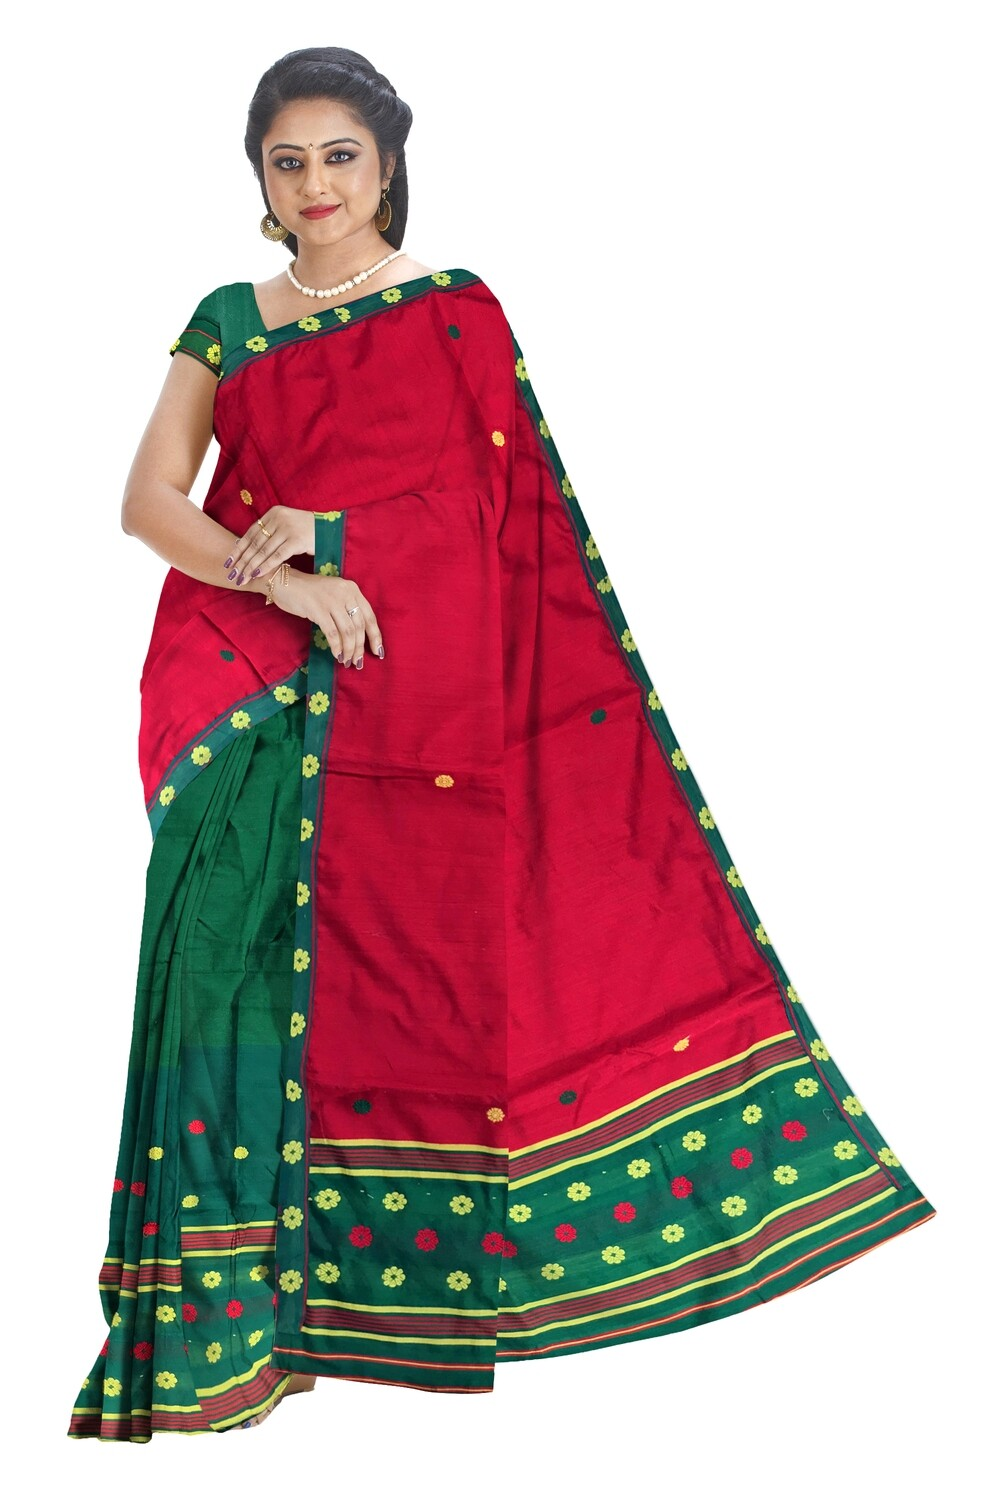 Ready To Wear Bua Mekhela Sador